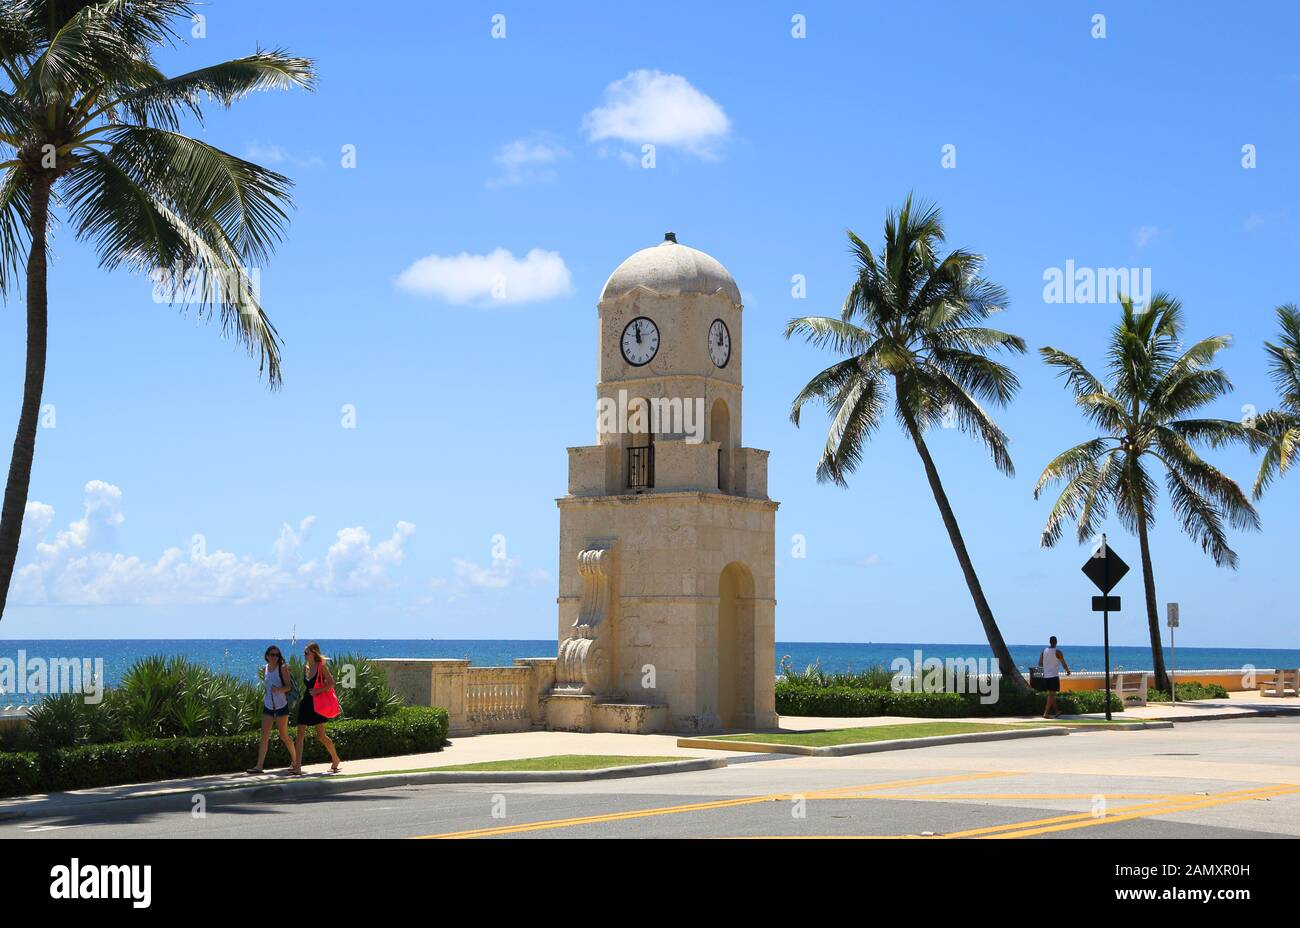 the clock tower at palm beach on the florida coast Stock Photo